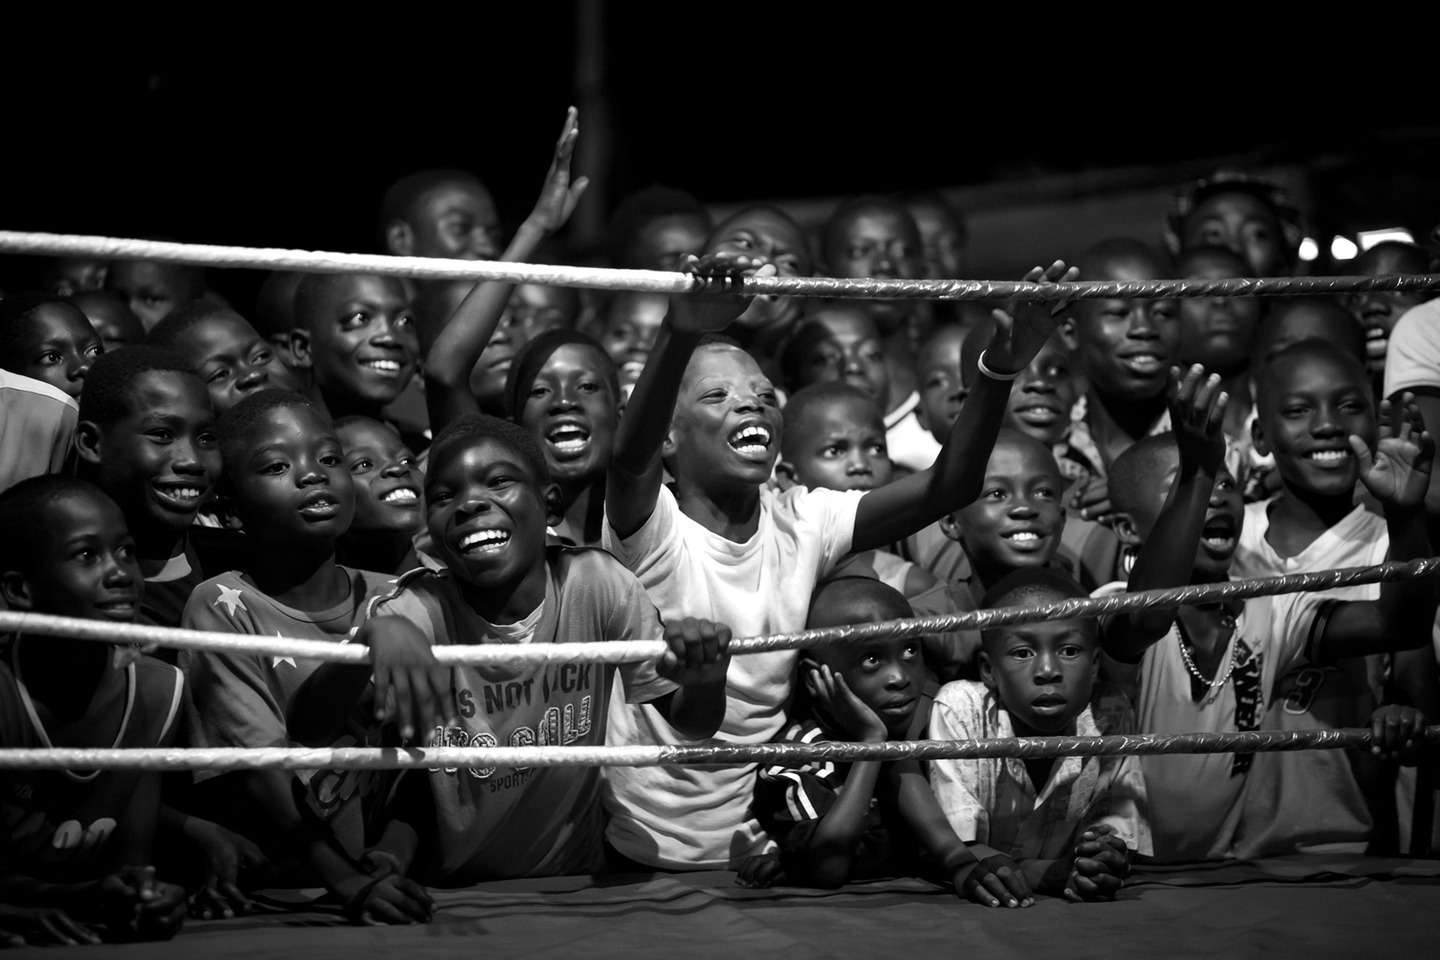 If one is thinking about countries being successful in boxing, just a few will have Ghana in mind. But Ghana produced a couple of world champions in boxing - the most famous one being Azumah Nelson. The weird fact about boxing in Ghana is all world champions are from Bukom, a small neighborhood of Accra. Bukom is a poor suburb, most people work as fishermen. But boxing here has a long tradition - it is the second nature of the people as many say. Hundreds of years ago, the Ga-People, an ethnic group who lives mainly in Accra, developed their own way of fighting. Due to the British influence during colonization, the Ga came in touch with boxing. Since then boxing is the most famous sport in Bukom. Nowadays boxing is much more than a sport, it is a way to escape poverty and everyday problems. Many kids and juveniles dream of being a professional boxer in the US or Europe. They fight for their dreams, literally.